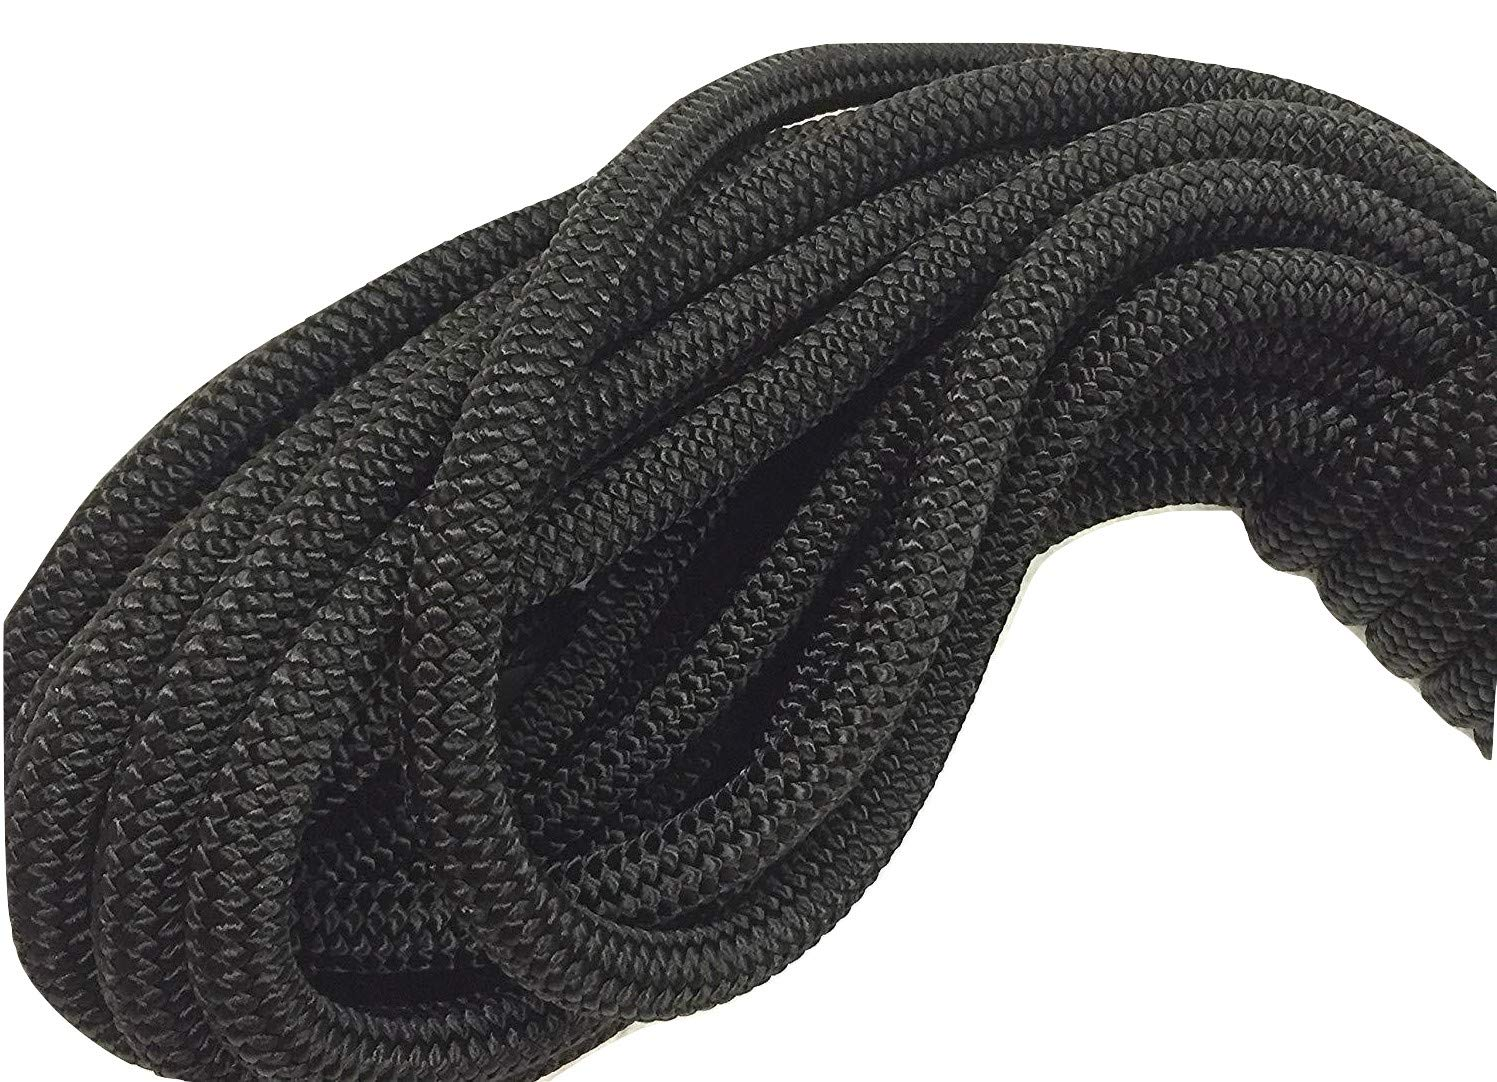 3/8'' Black Double Braided Nylon Anchor/Dock Line Rope, Available in 50', 100', 150' and 300' (50 ft. Hank)